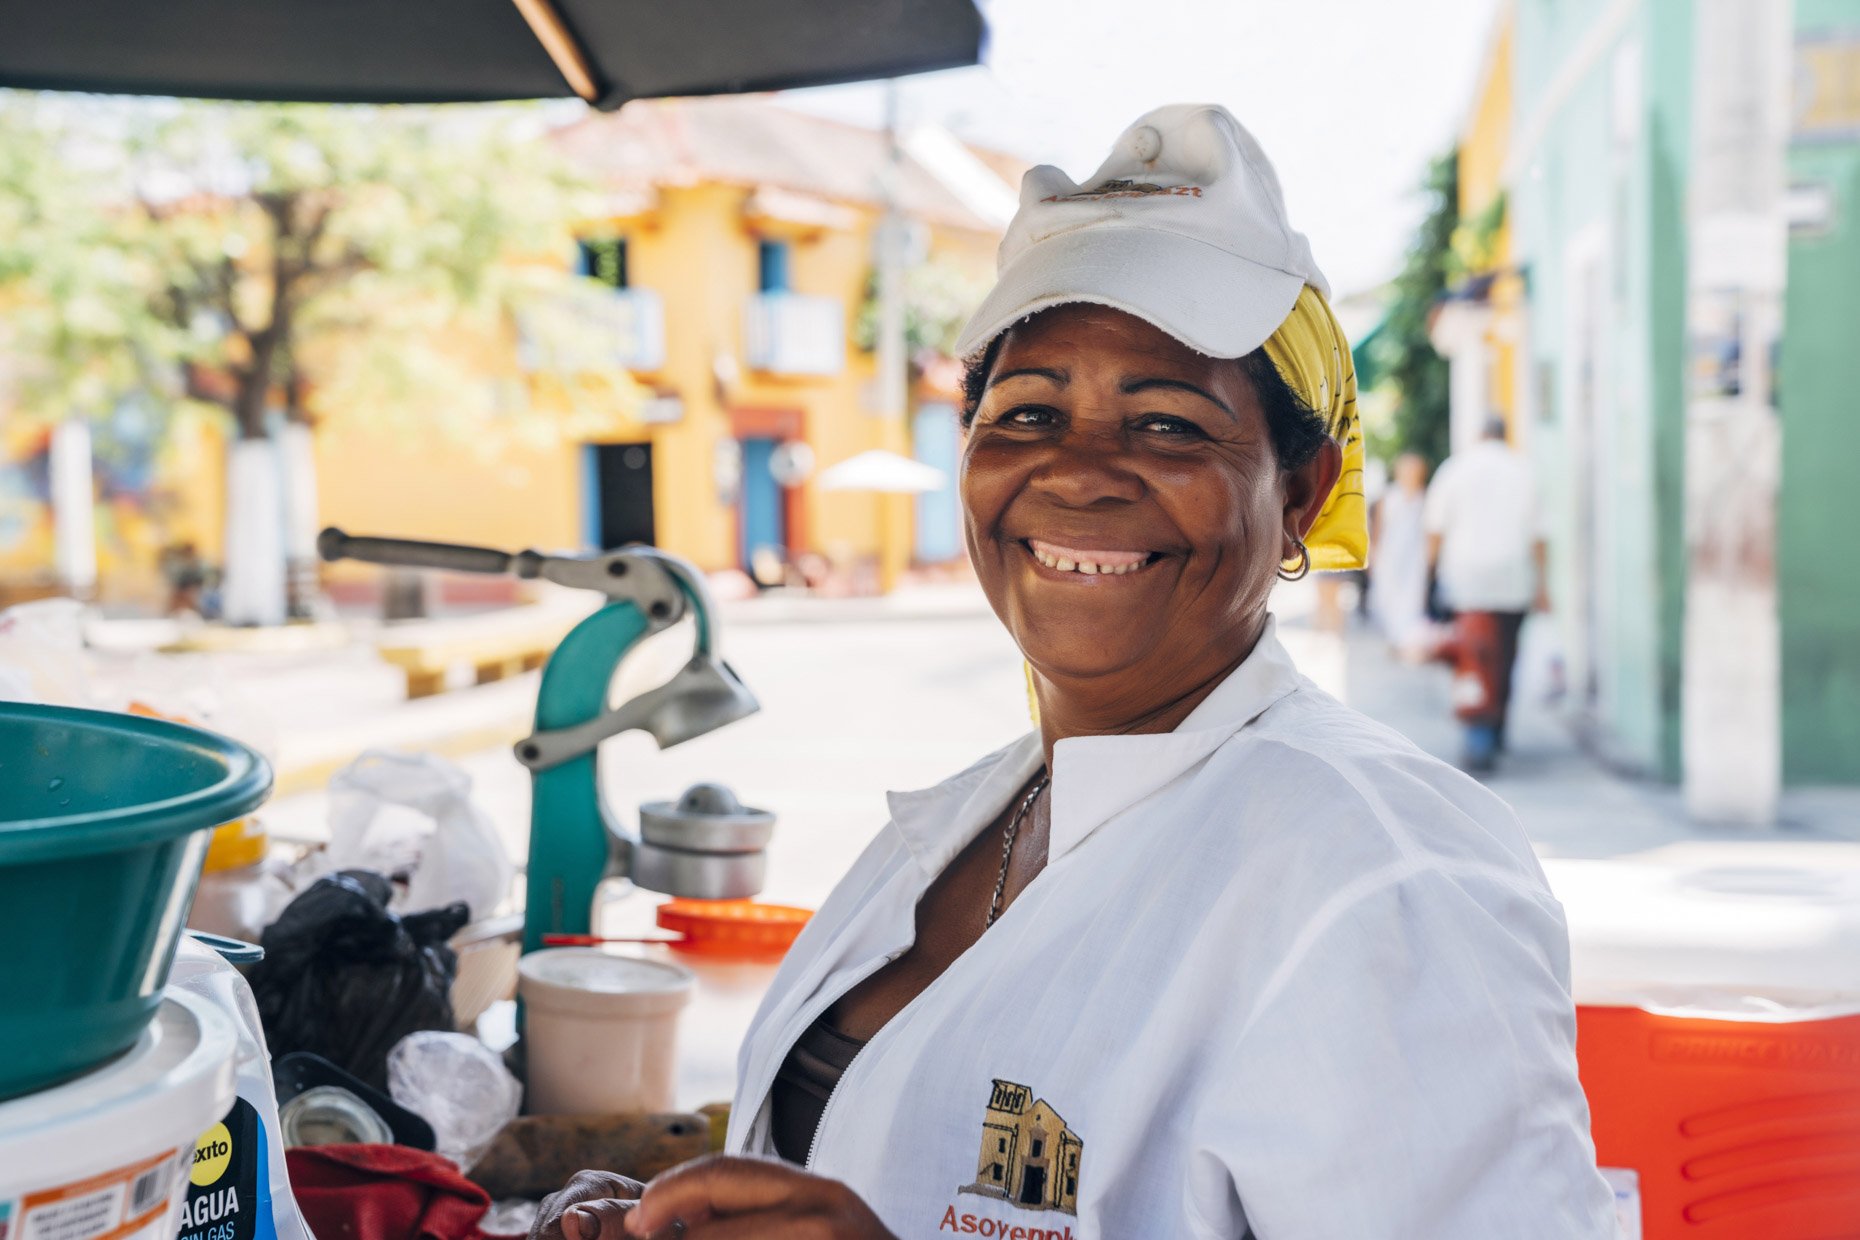 Portrait of smiling woman at street food cart in Cartagena, Colombia